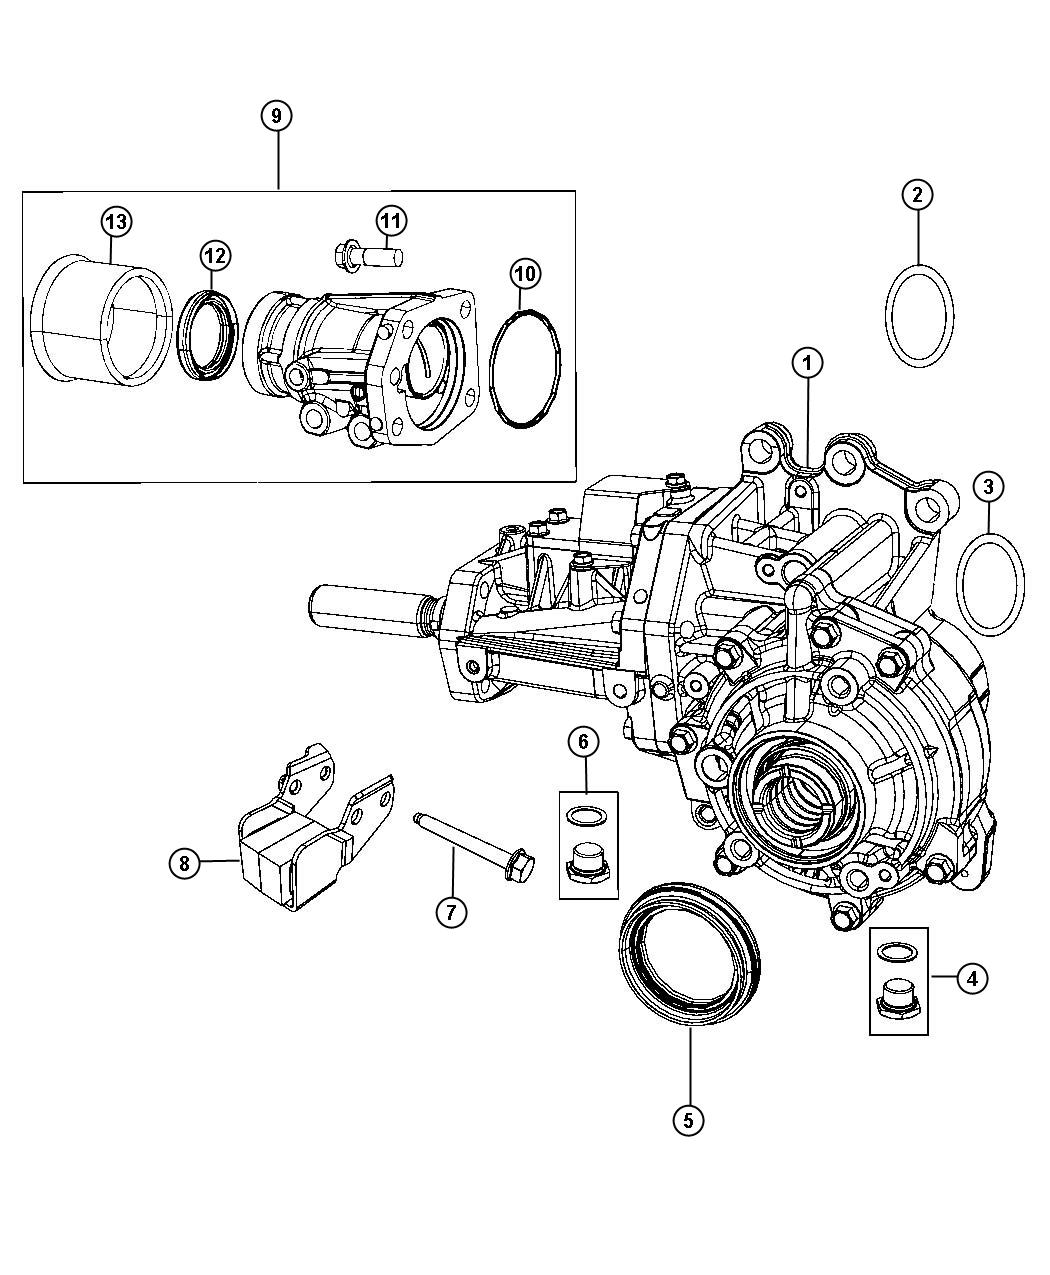 Jeep Compass Power Transfer Unit Train Module Manual